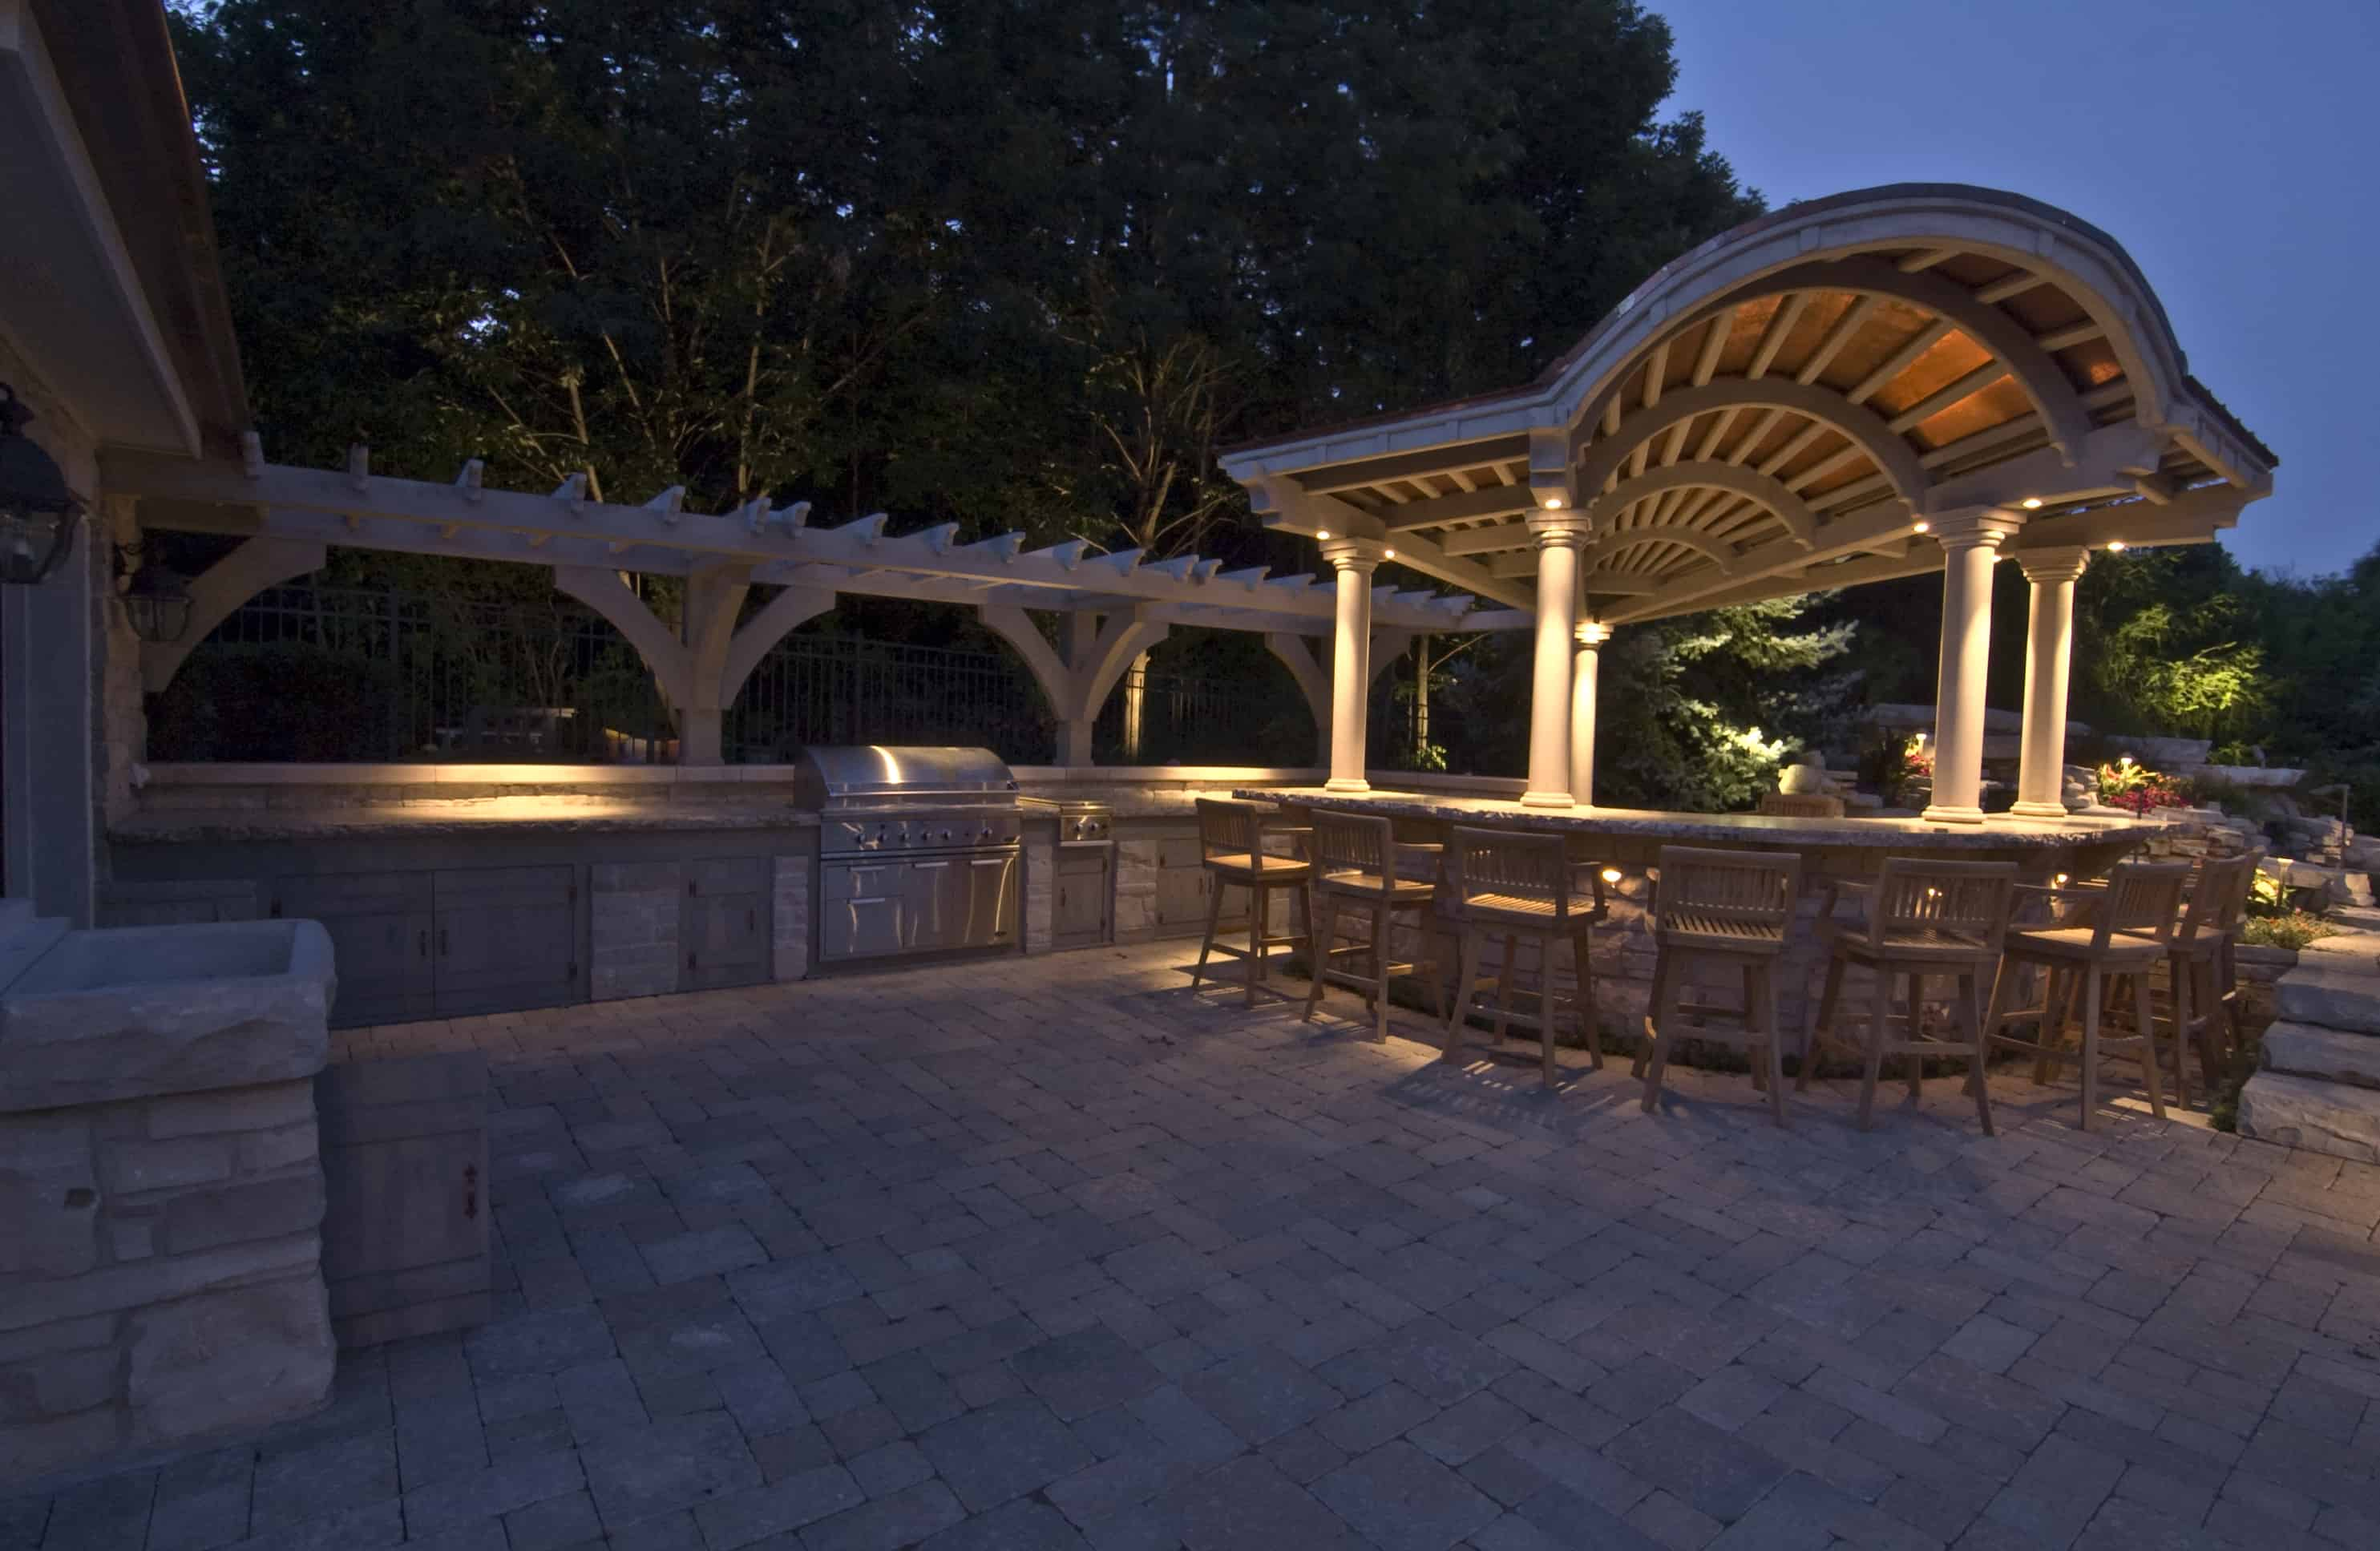 kitchen countertops las vegas decoration kitchen, bars and grills - outdoor lighting in chicago, il ...